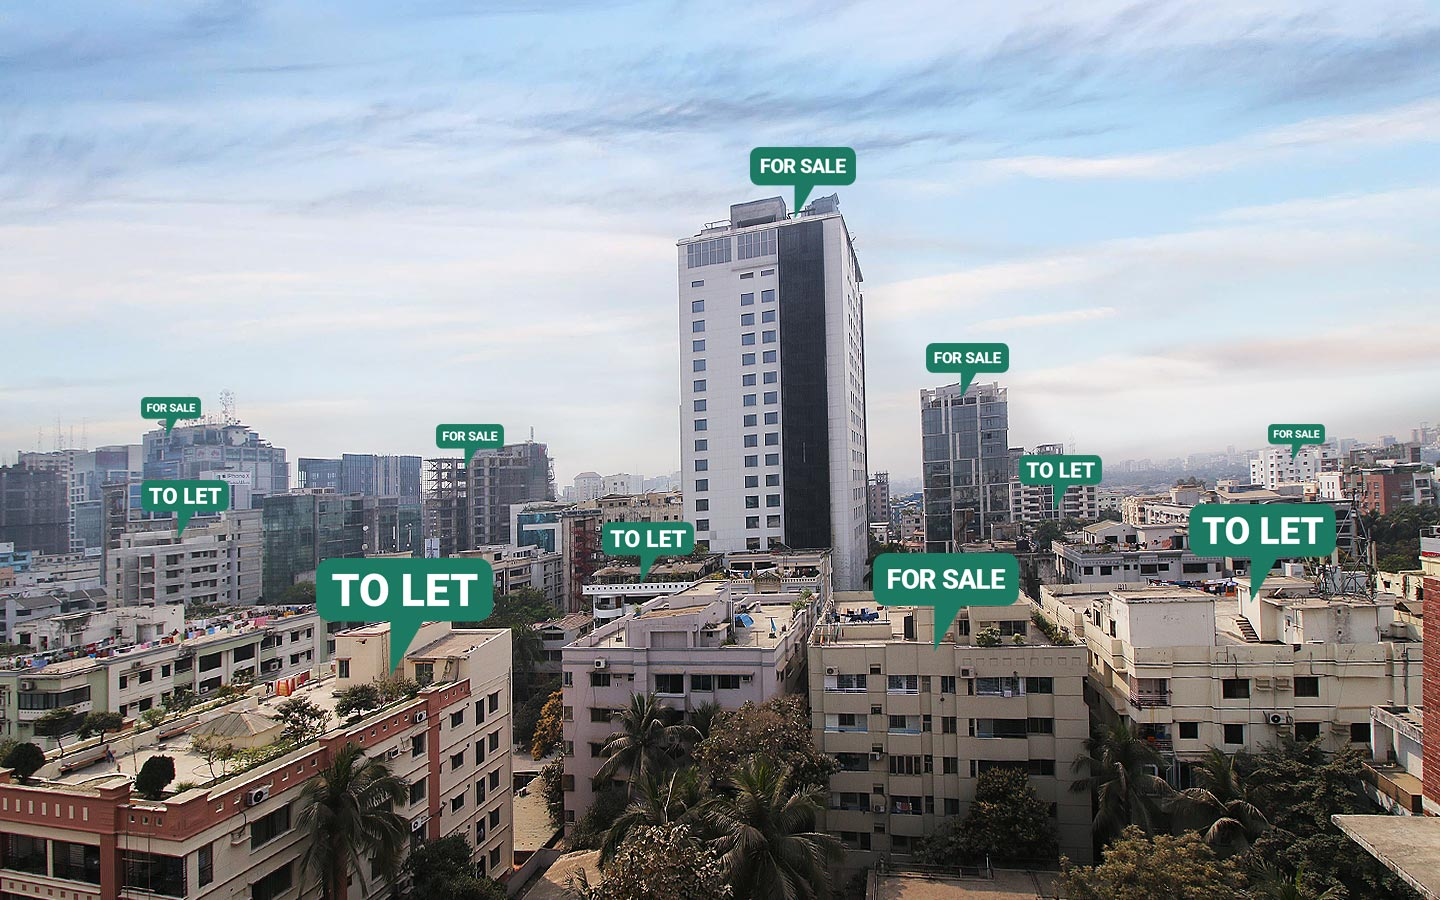 Present condition of the property market